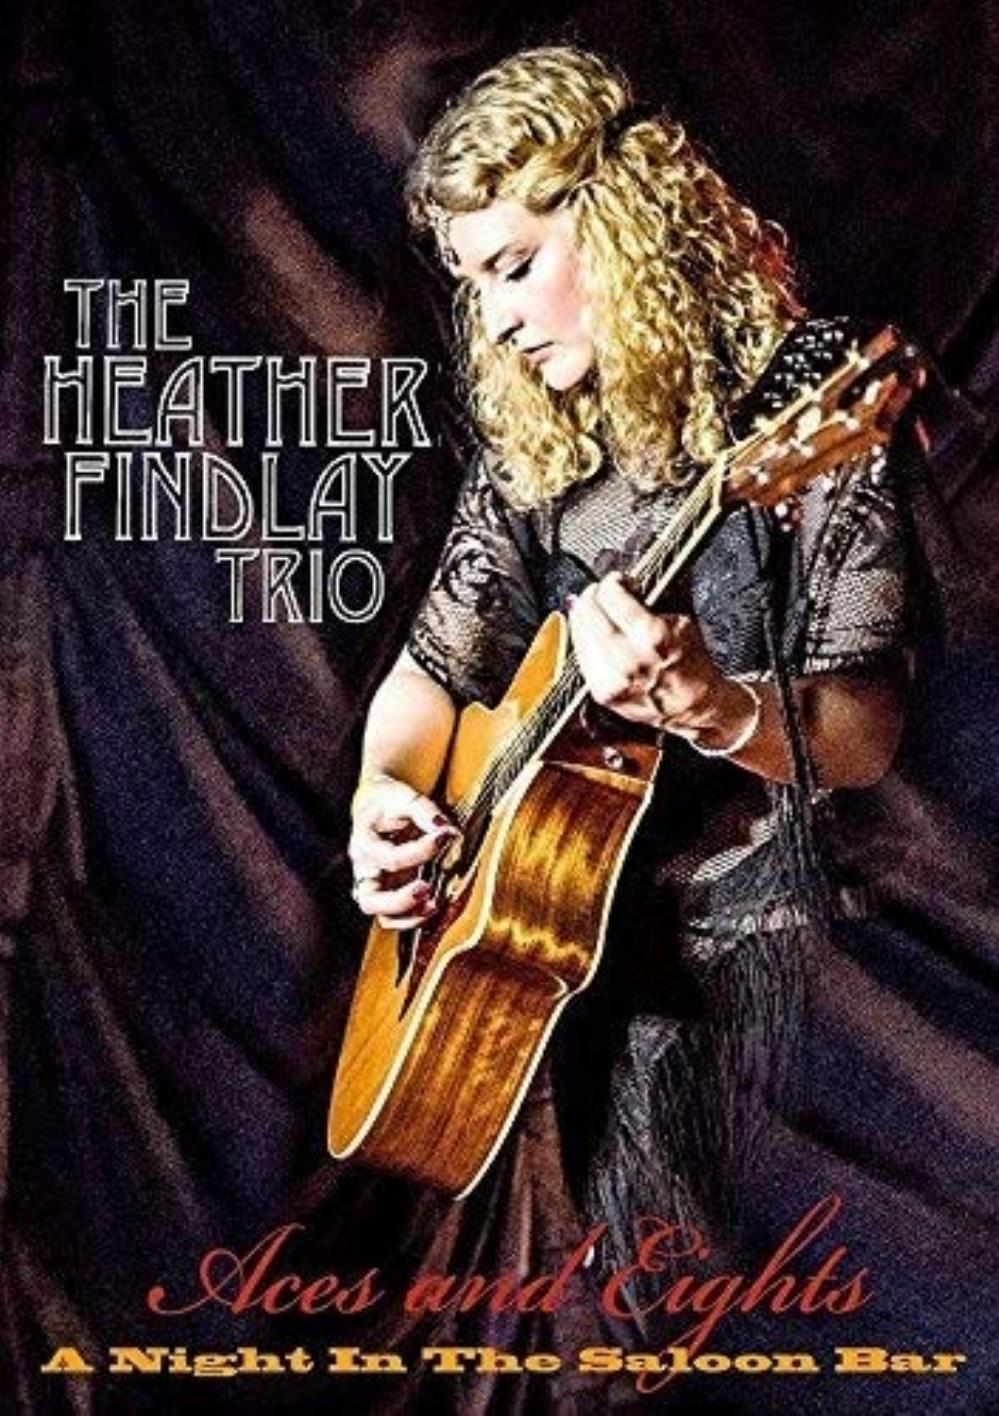 Heather Findlay The Heather Findlay Trio: Aces and Eights - A Night In The Saloon Bar album cover